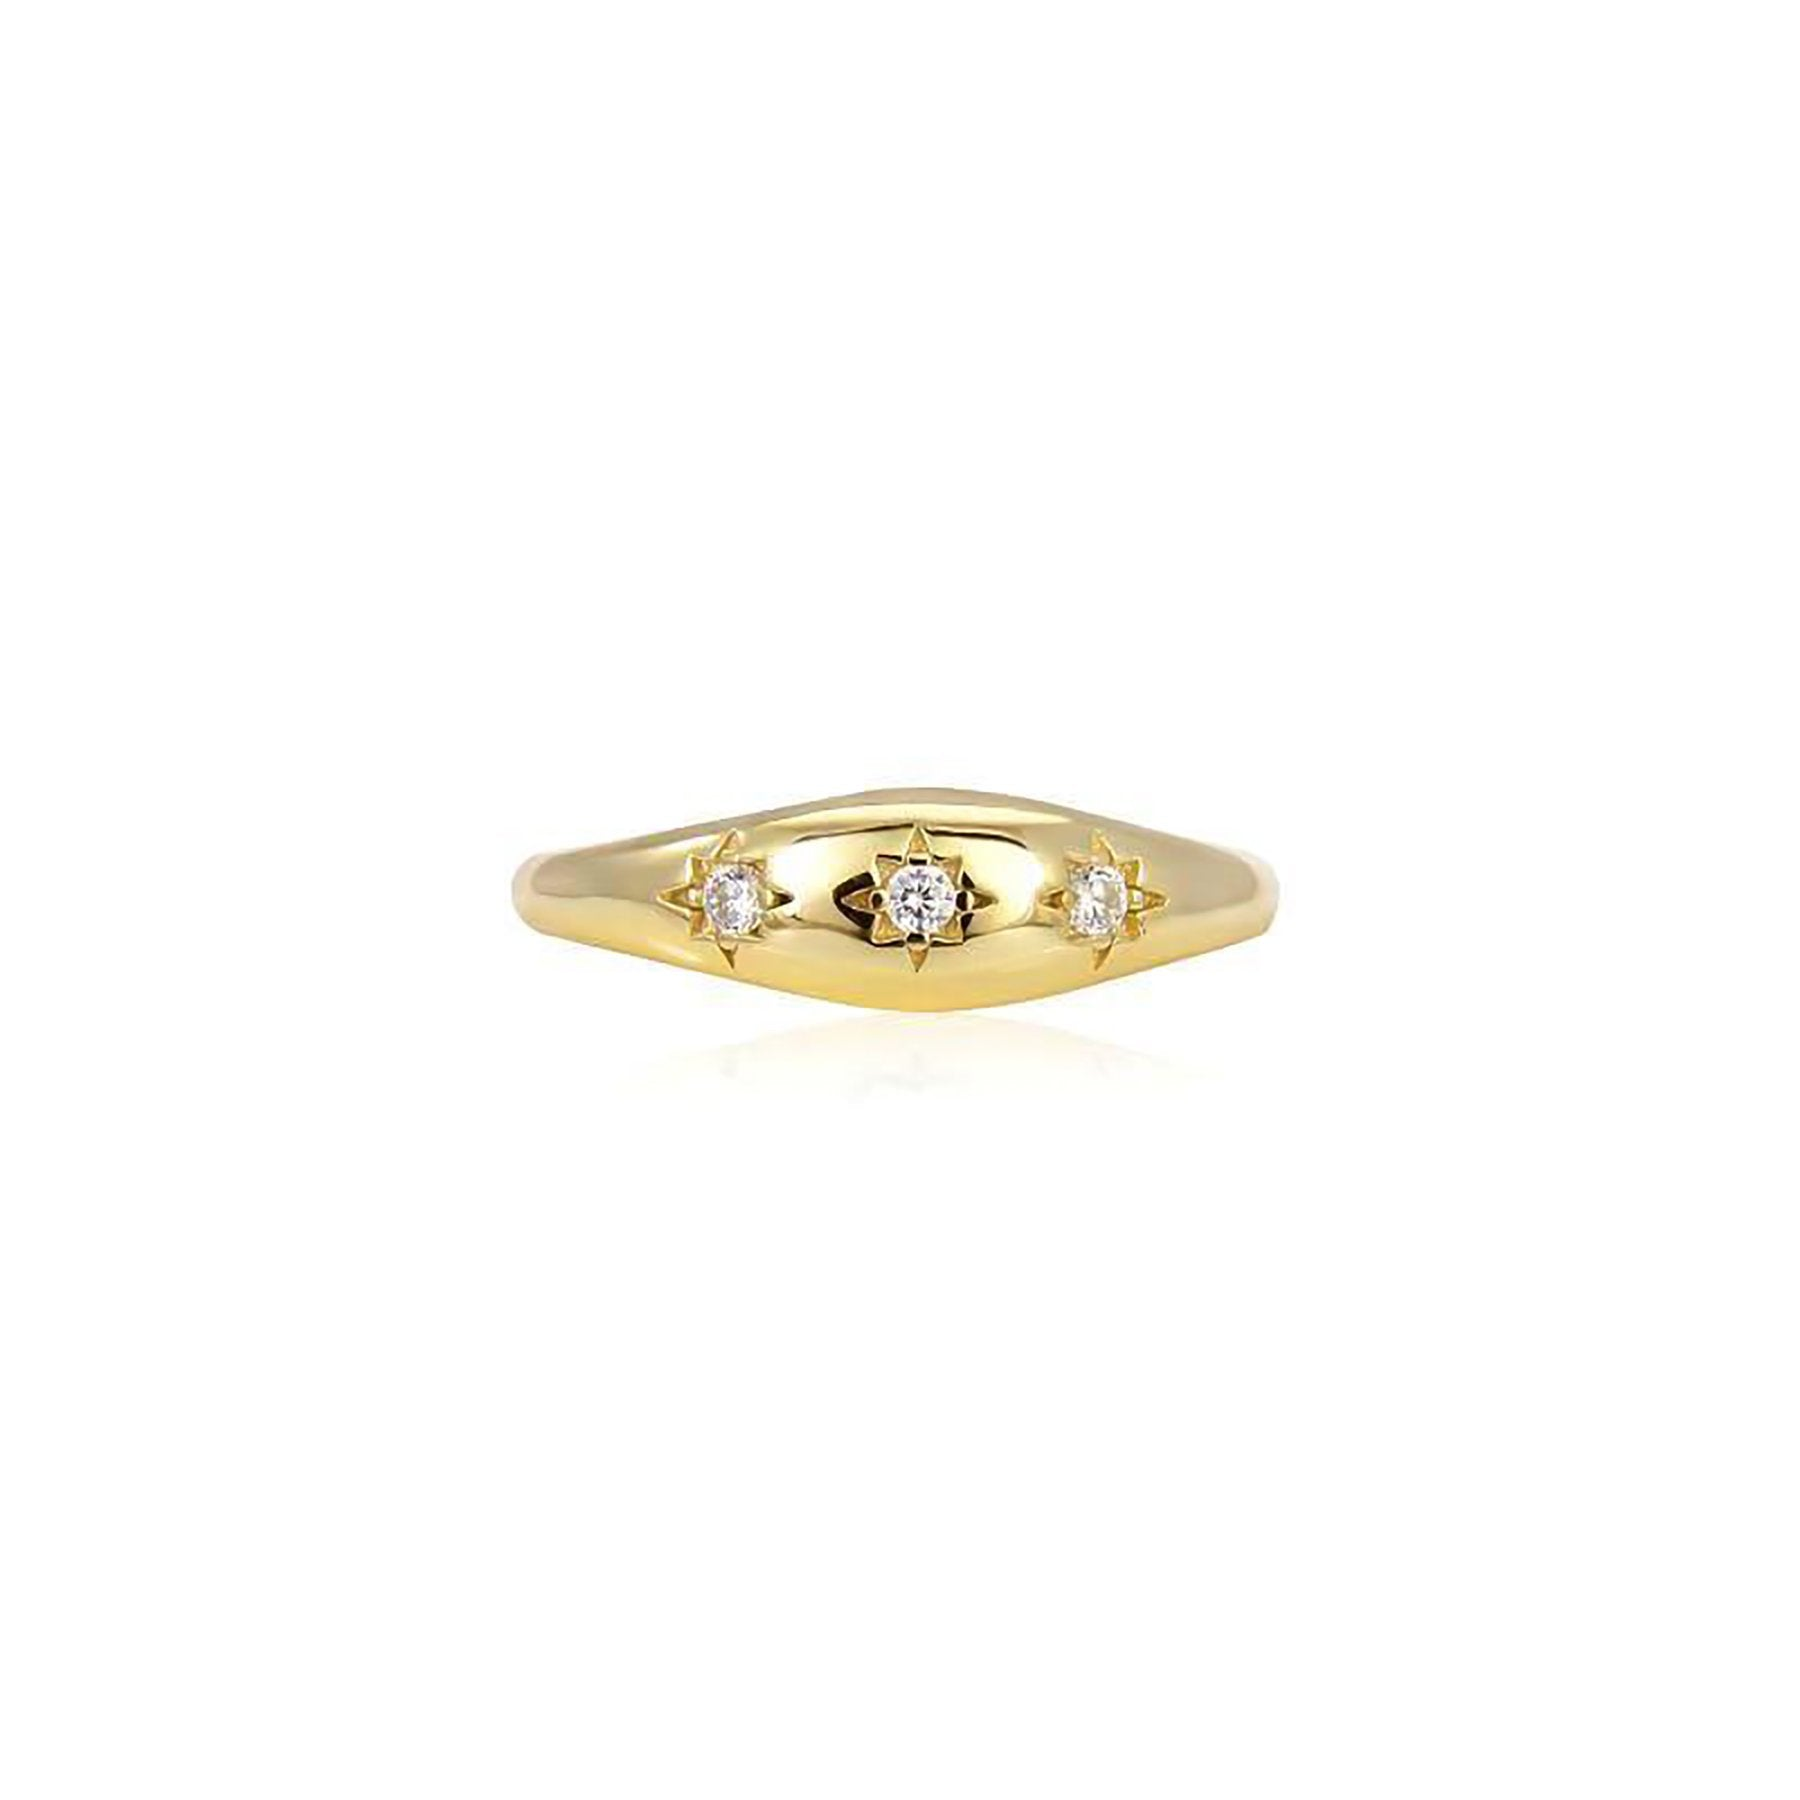 PROMINENT COVER RING WITH 3 STARS GOLD PLATED